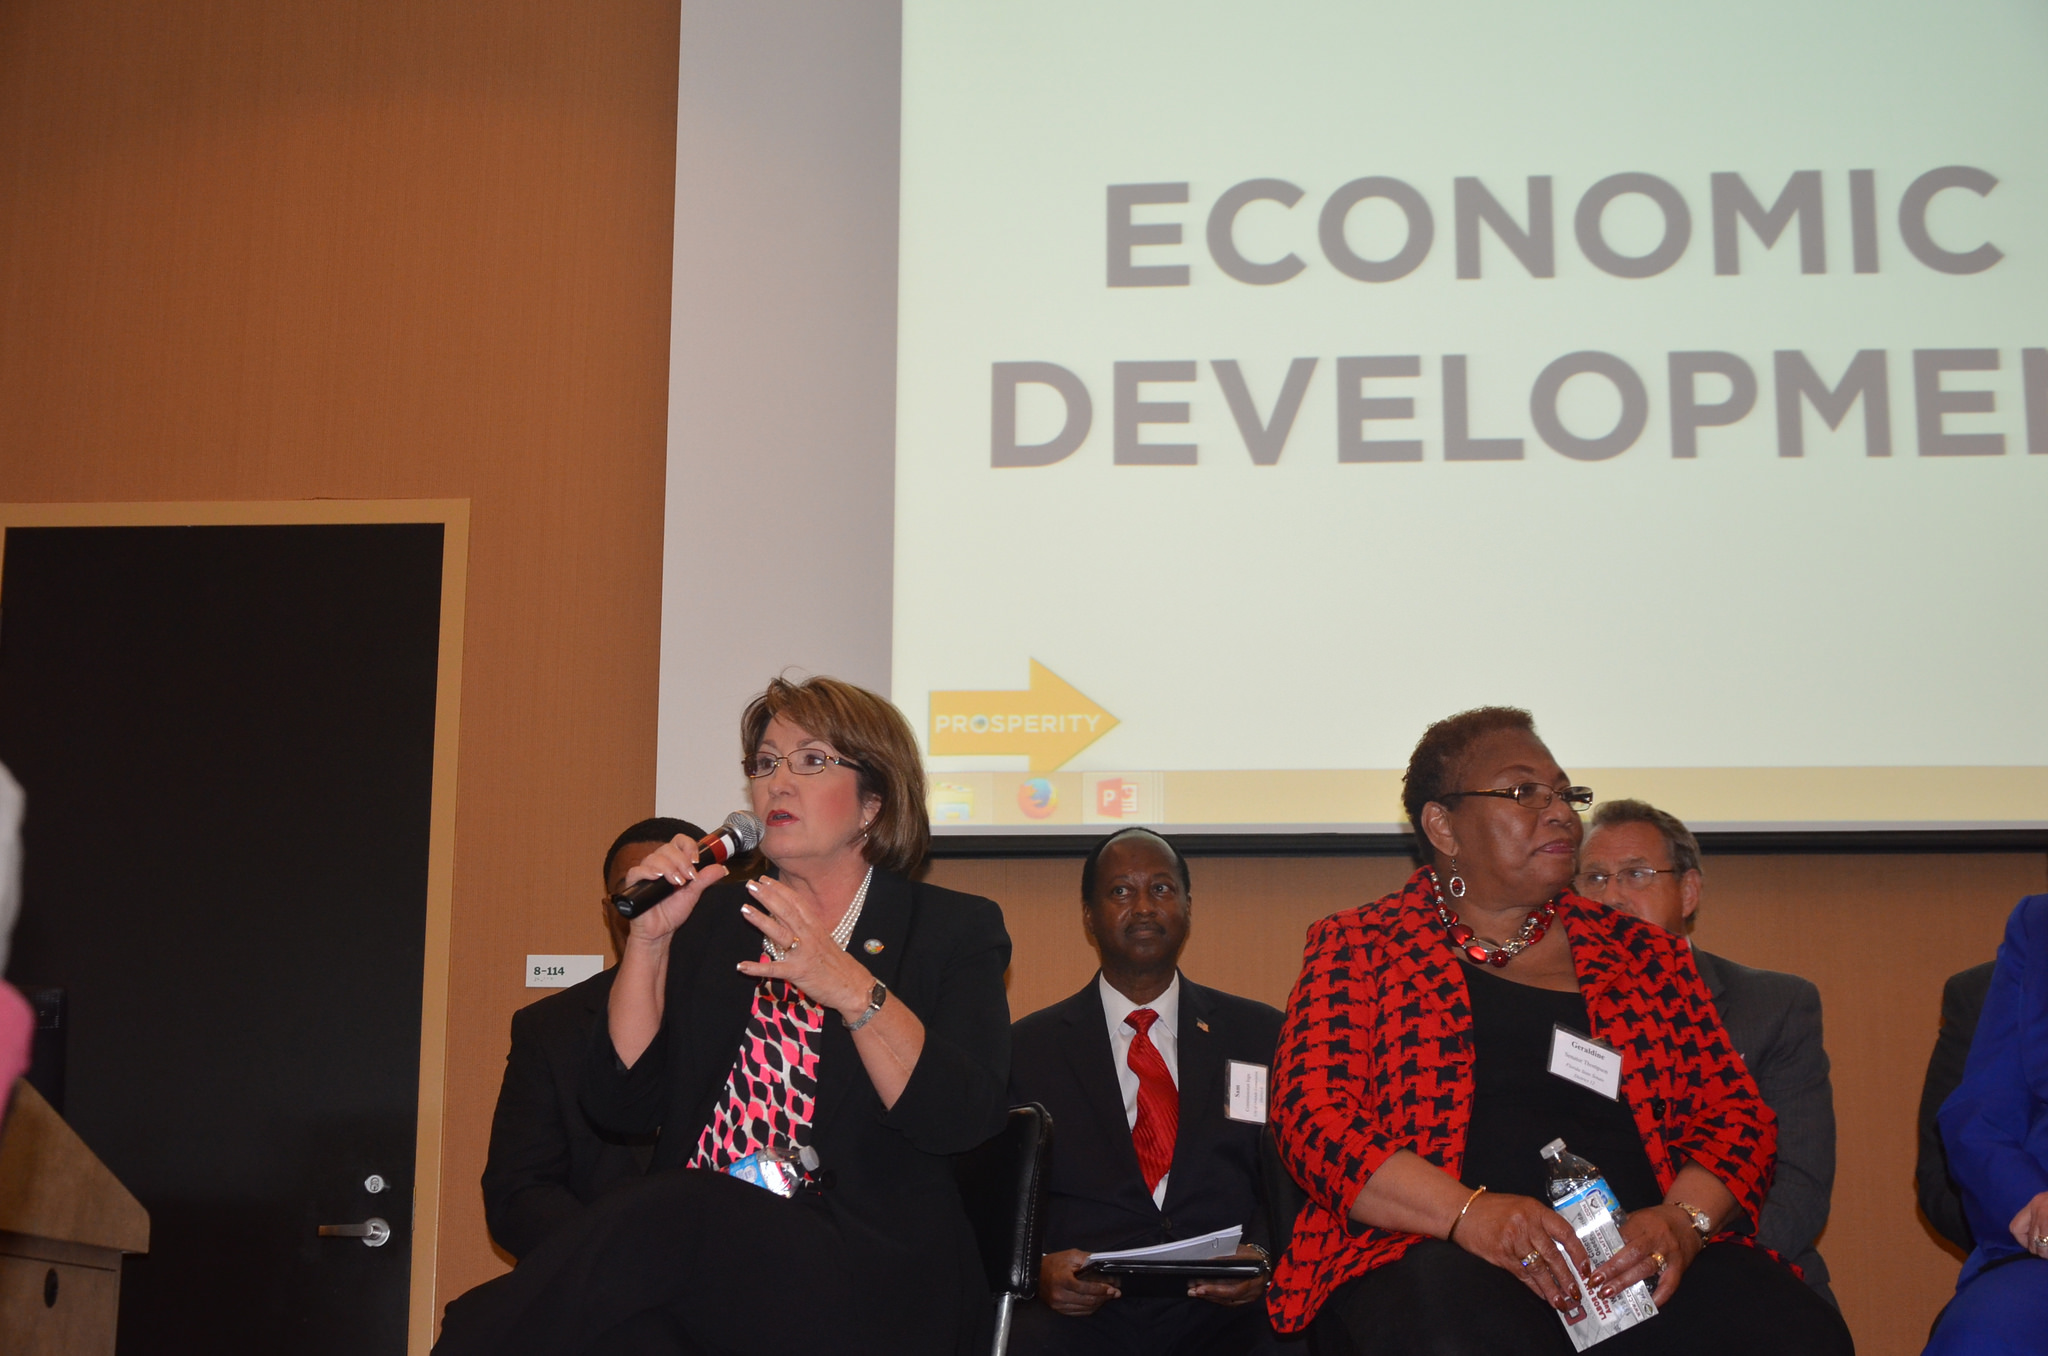 Mayor Jacobs with distinguished panel